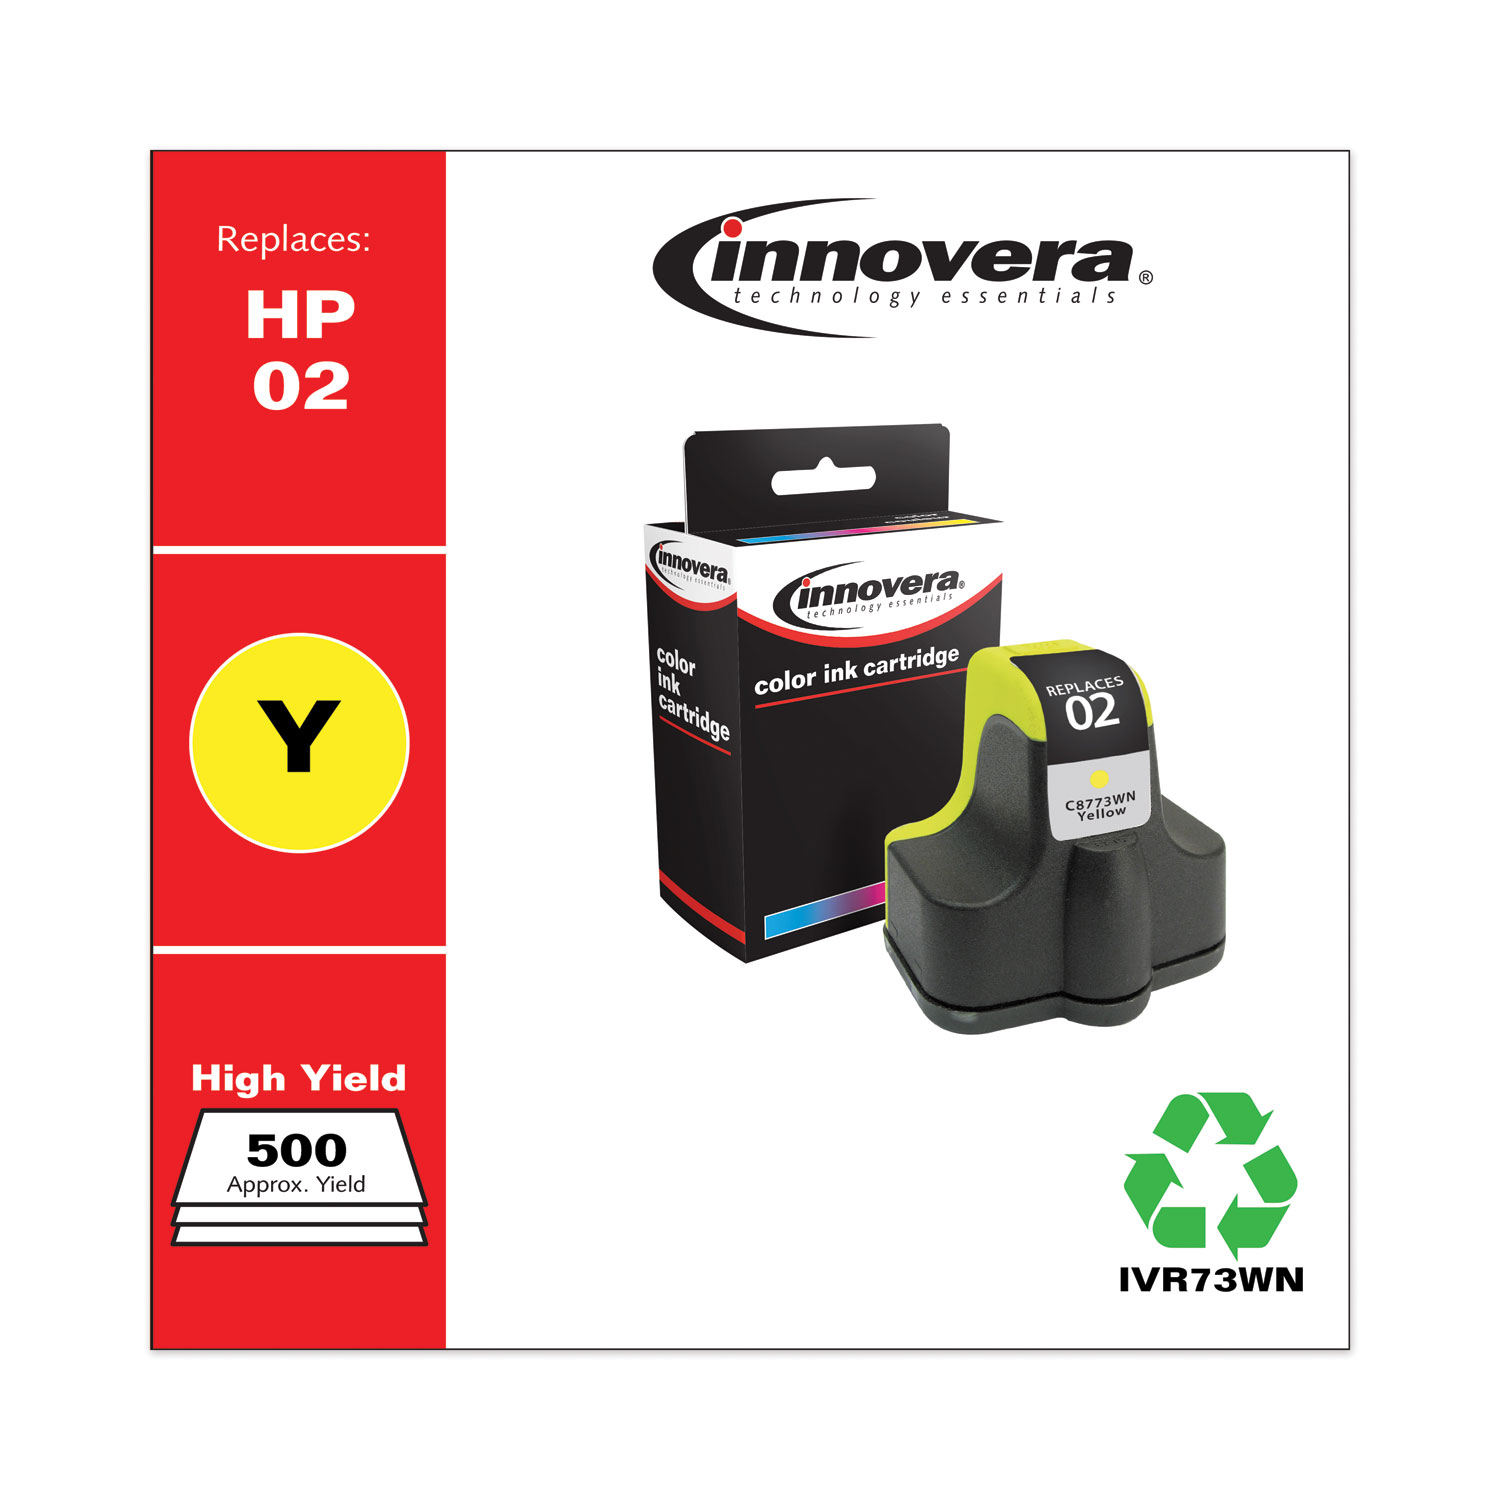 Remanufactured Yellow Ink, Replacement for HP 02 (C8773WN), 500 Page-Yield IVR73WN